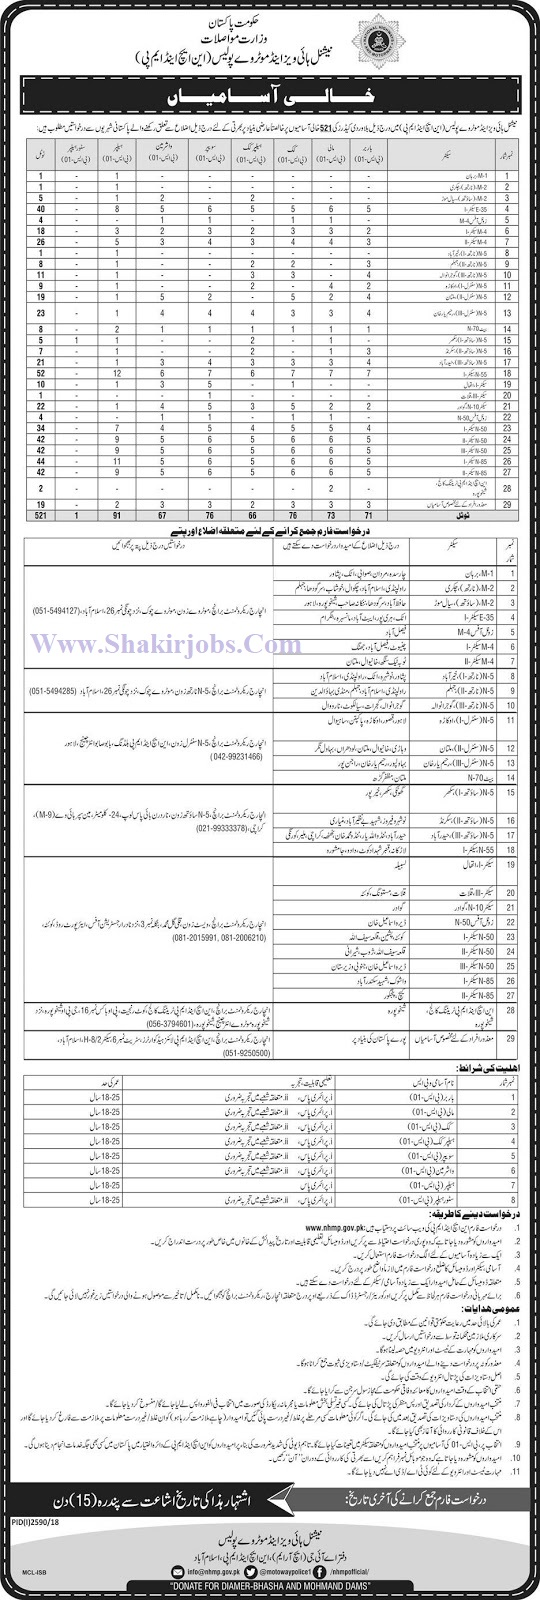 national highway and motorway police jobs 2018 jobs in pakistan www.nhmp.gov.pk application form aiou www.nhmp.gov.pk application form motorway police helpline jobs in motorway police december 2018 ppsc national highway motorway police jobs Motorway Police Jobs December 2018  motorway police jobs 2018 upcoming  motorway police jobs 2018 fpsc  motorway police jobs 2018 advertisement  motorway police jobs application form 2018  motorway police jobs 2018 punjab  motorway police jobs 2018 apply online  motorway police jobs 2018 in pakistan  national highways & motorway police